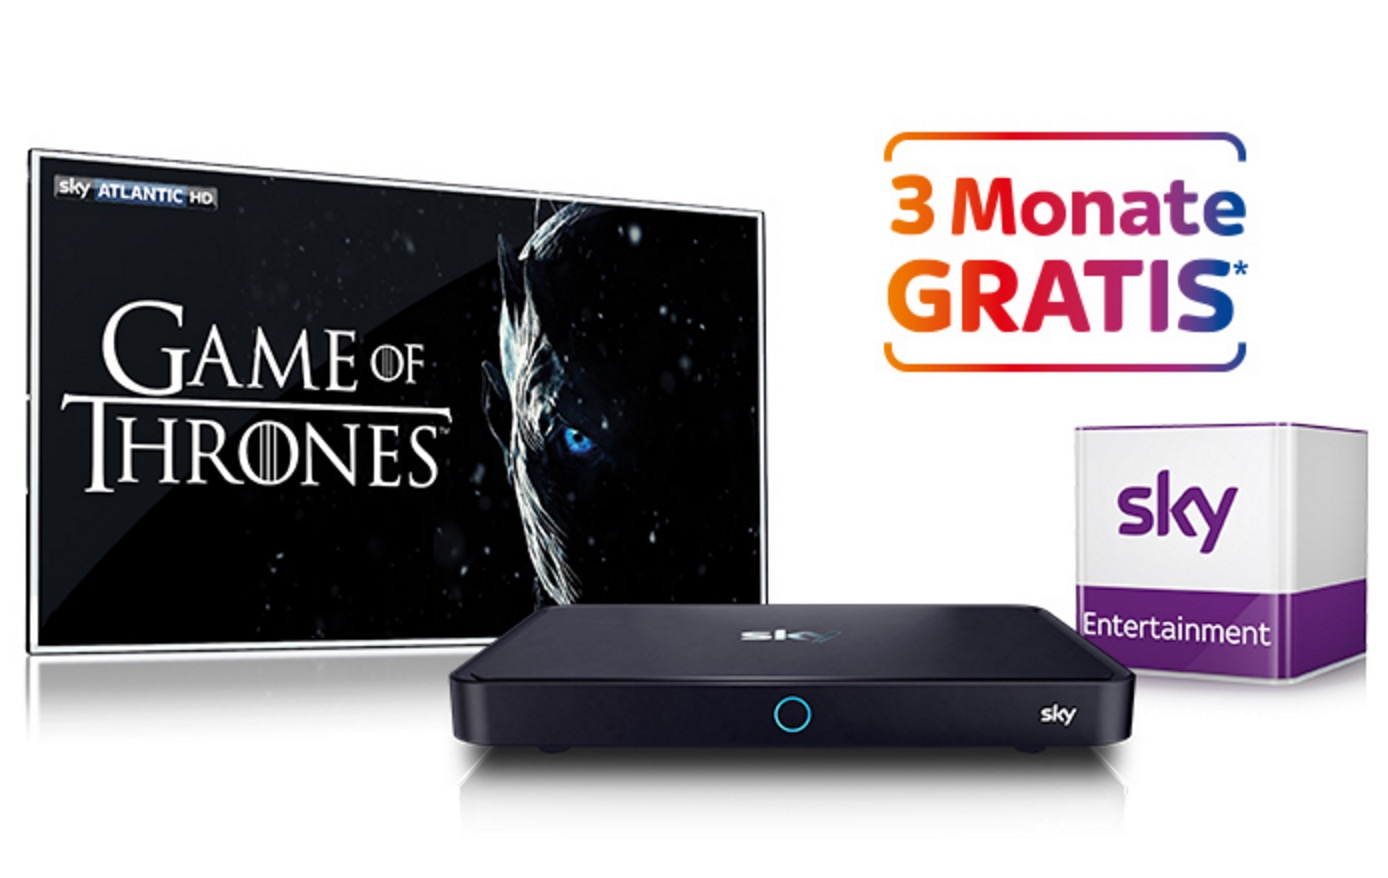 Sky Entertainment (inkl. der neuen Game of Thrones Staffel) 3 Monate gratis – danach 16,99 Euro monatlich